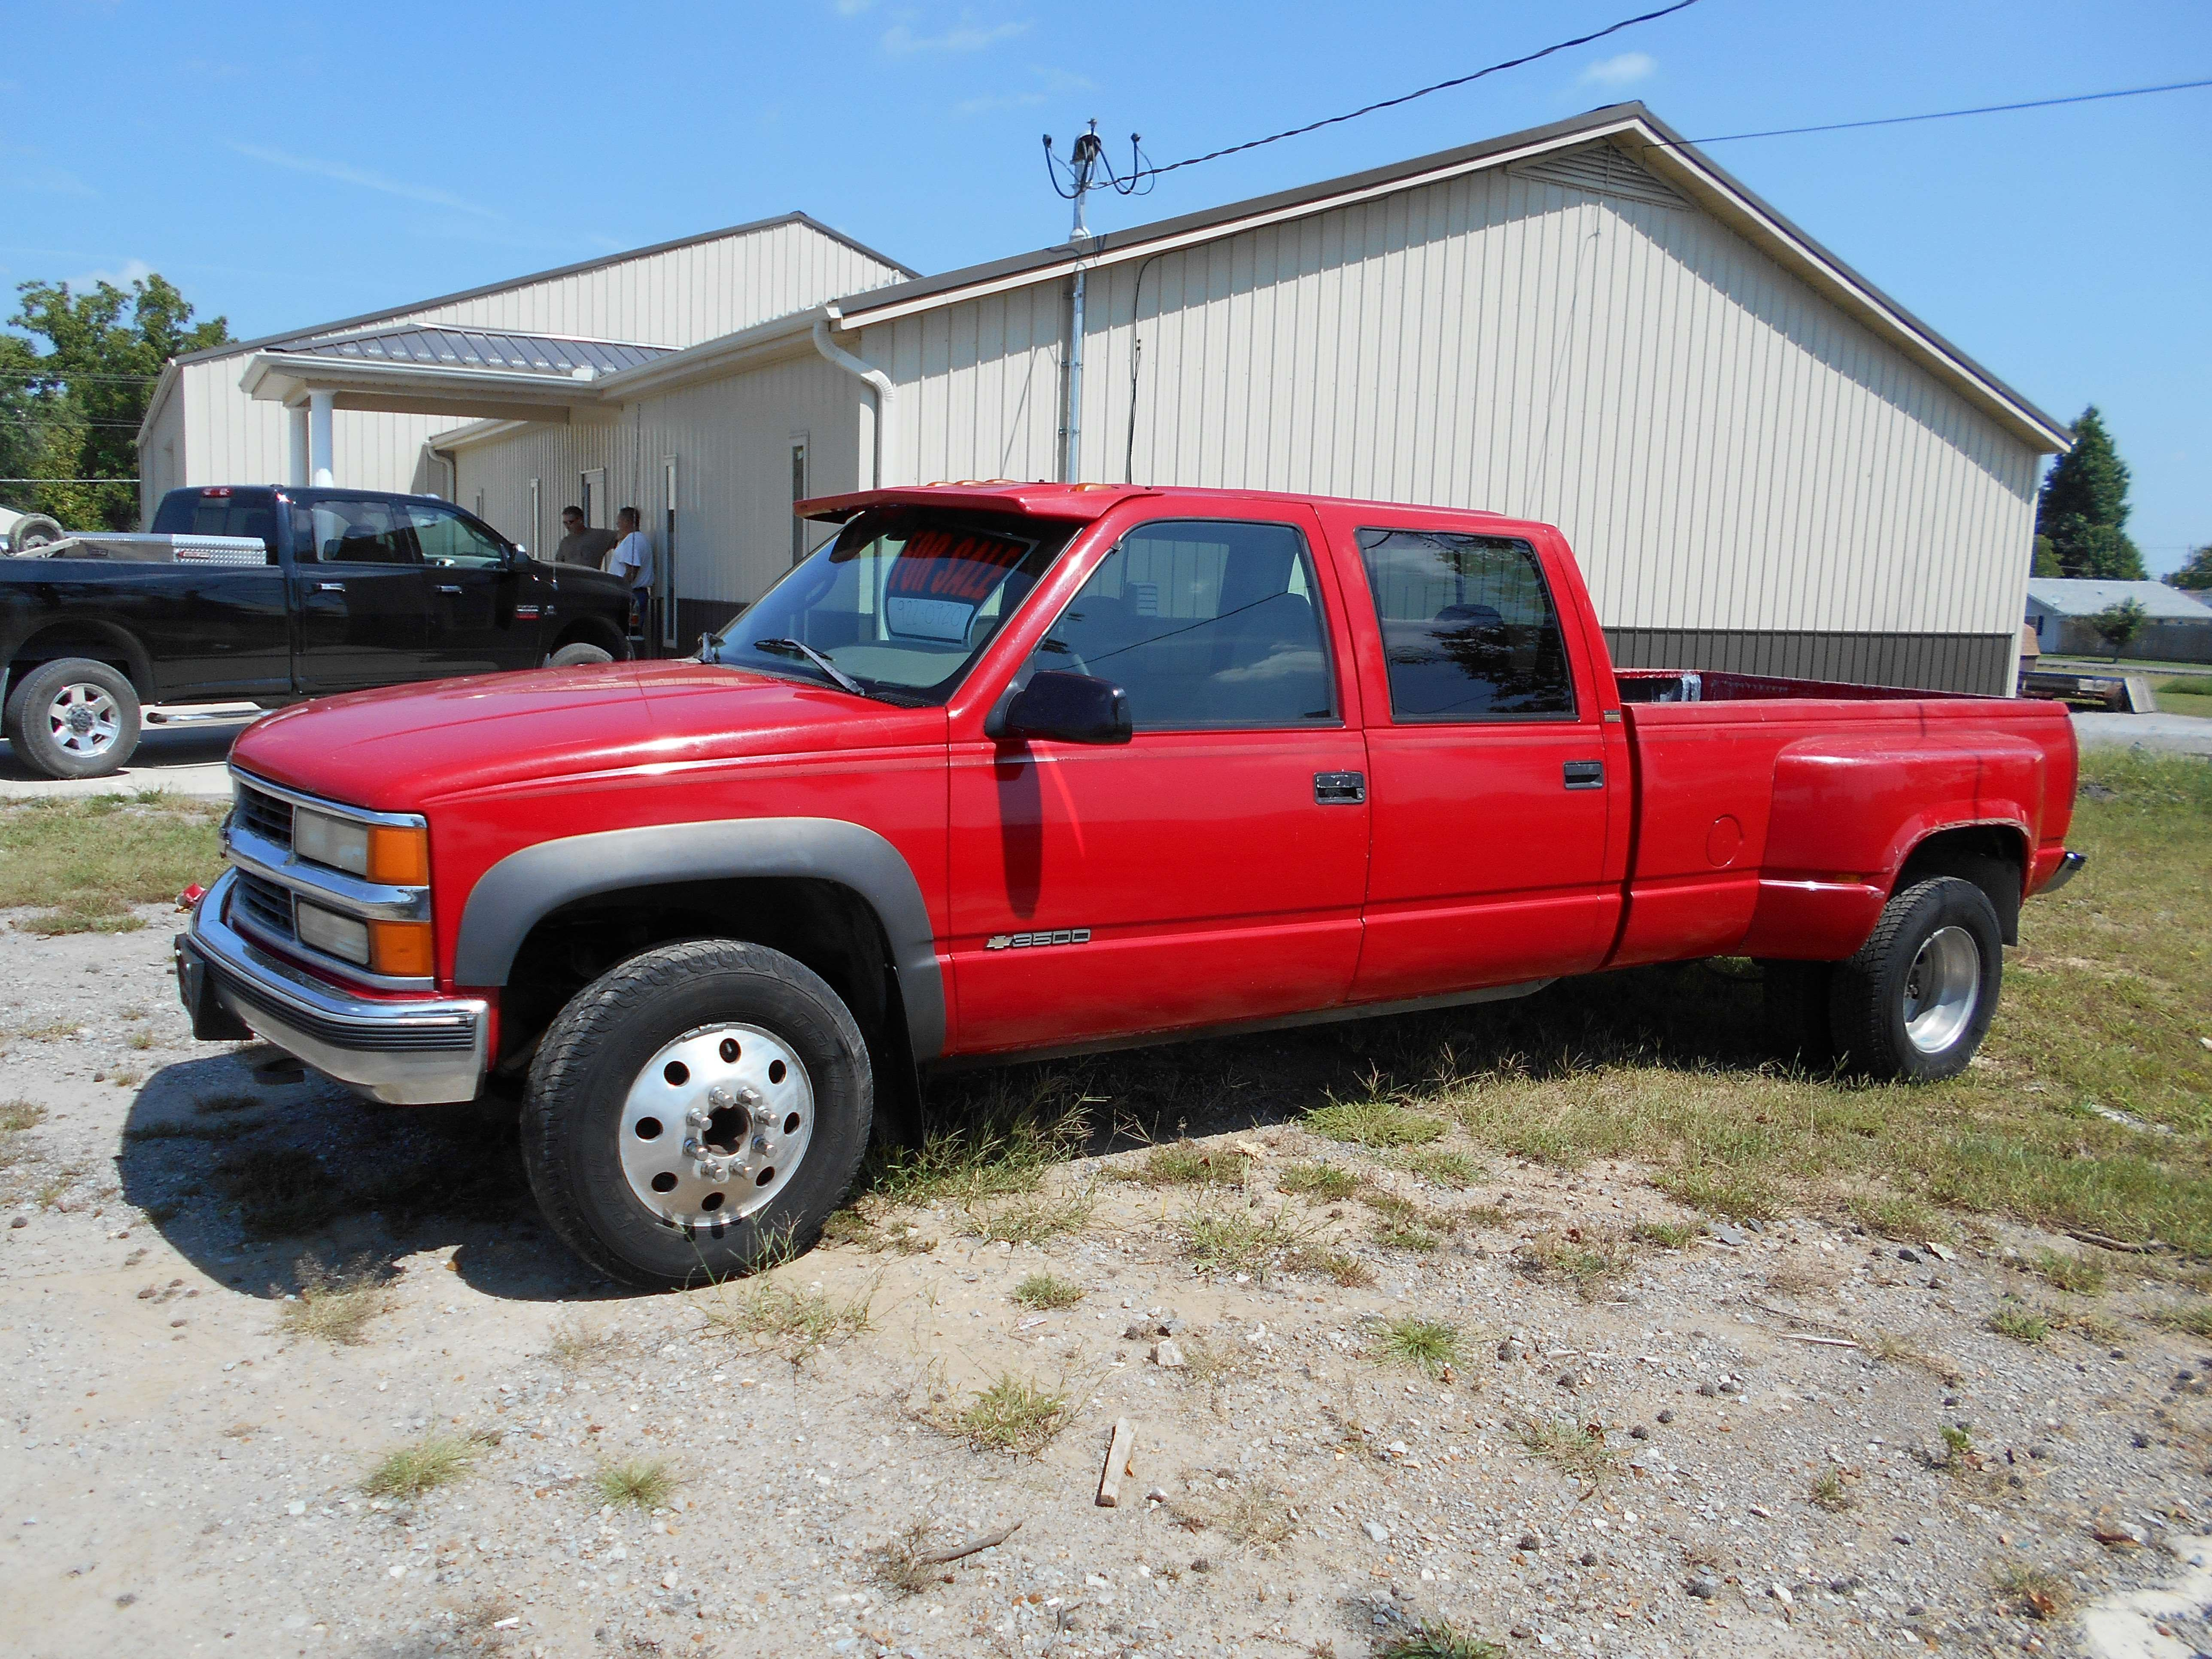 Make chevrolet model 3500hd dually year 1996 body style ute pick up exterior color red interior color gray doors four door vehicle condition good